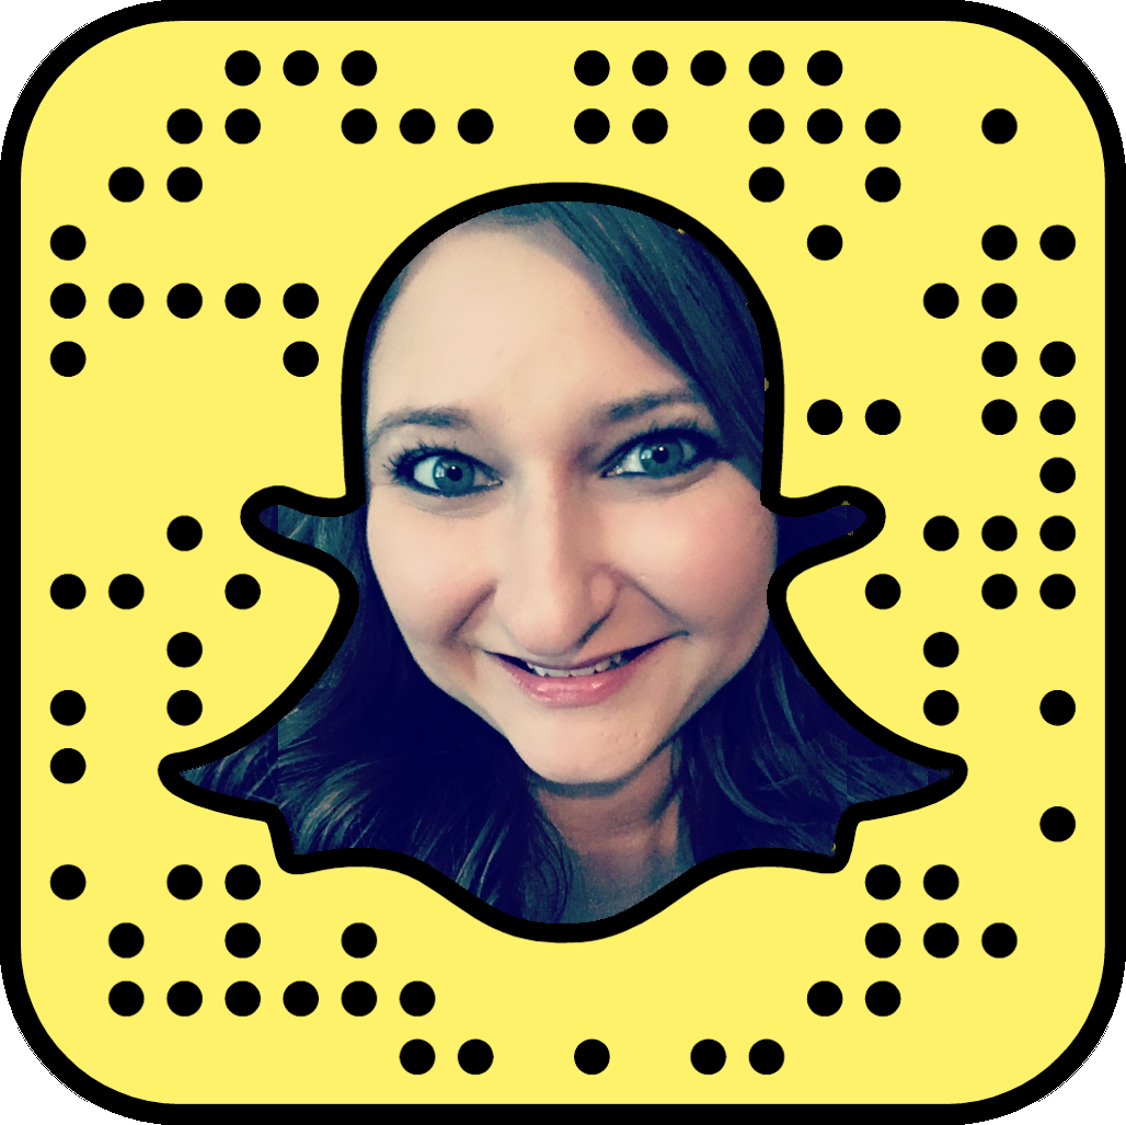 This is my blanket HELLO! I'm your #ChatSnap host Kristy from Houston, TX. Watch my feed for your questions! :) https://t.co/WhGAJGTYZv